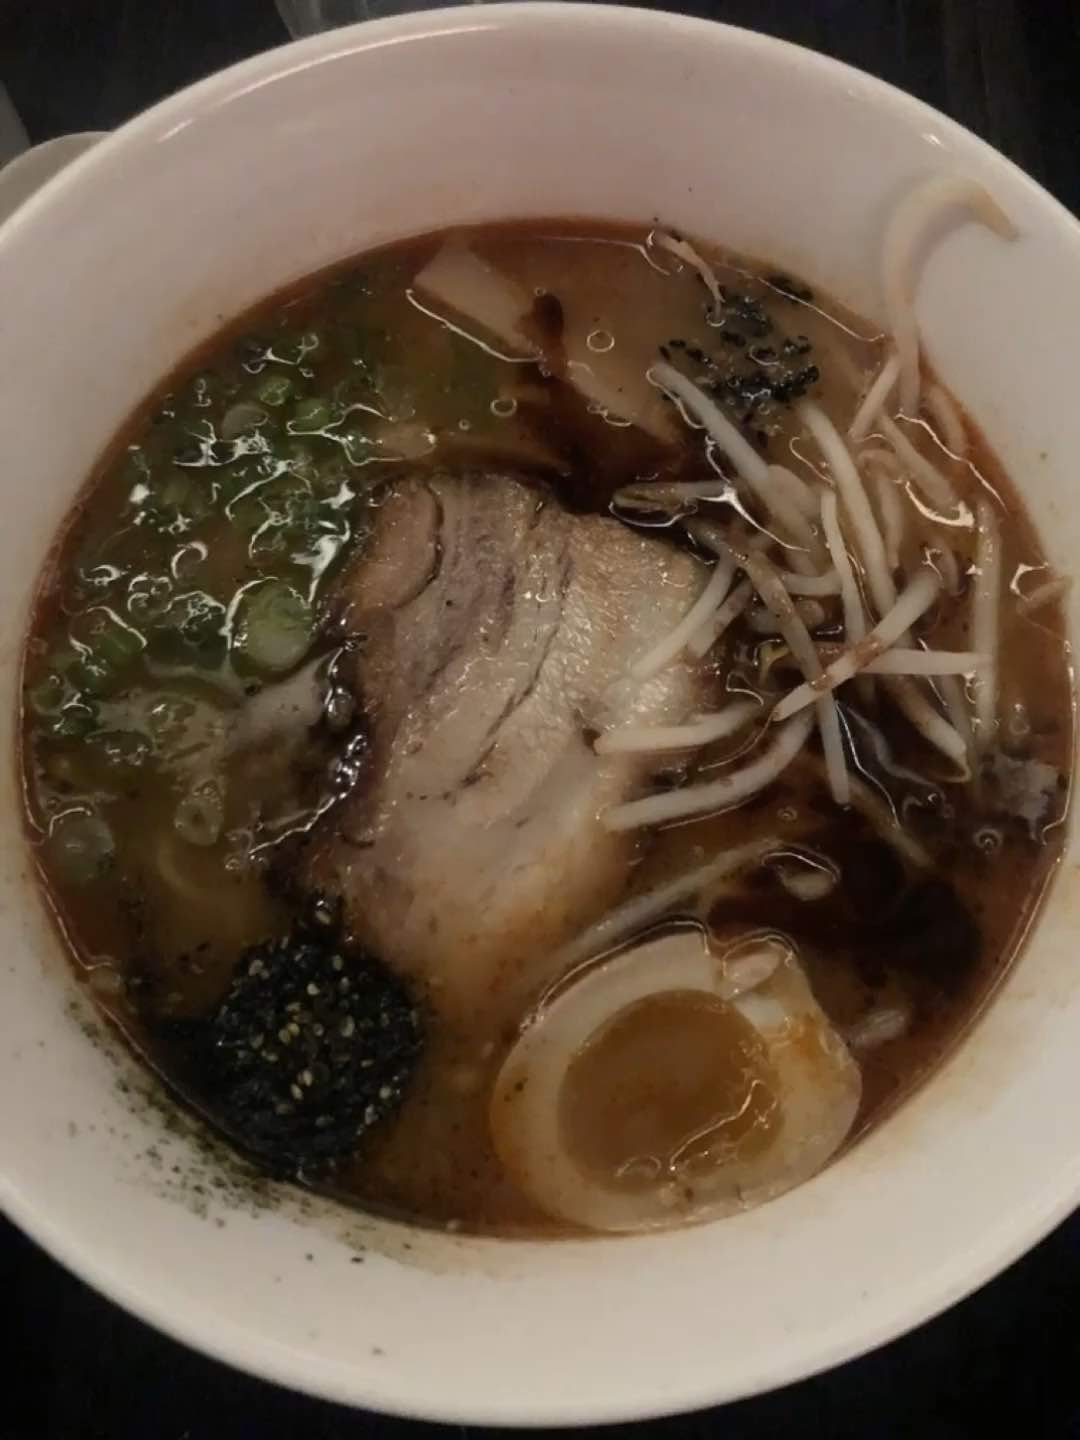 Thumbnail of I'm glad I tried it out once for the chashu, but I don't think I'll be back.